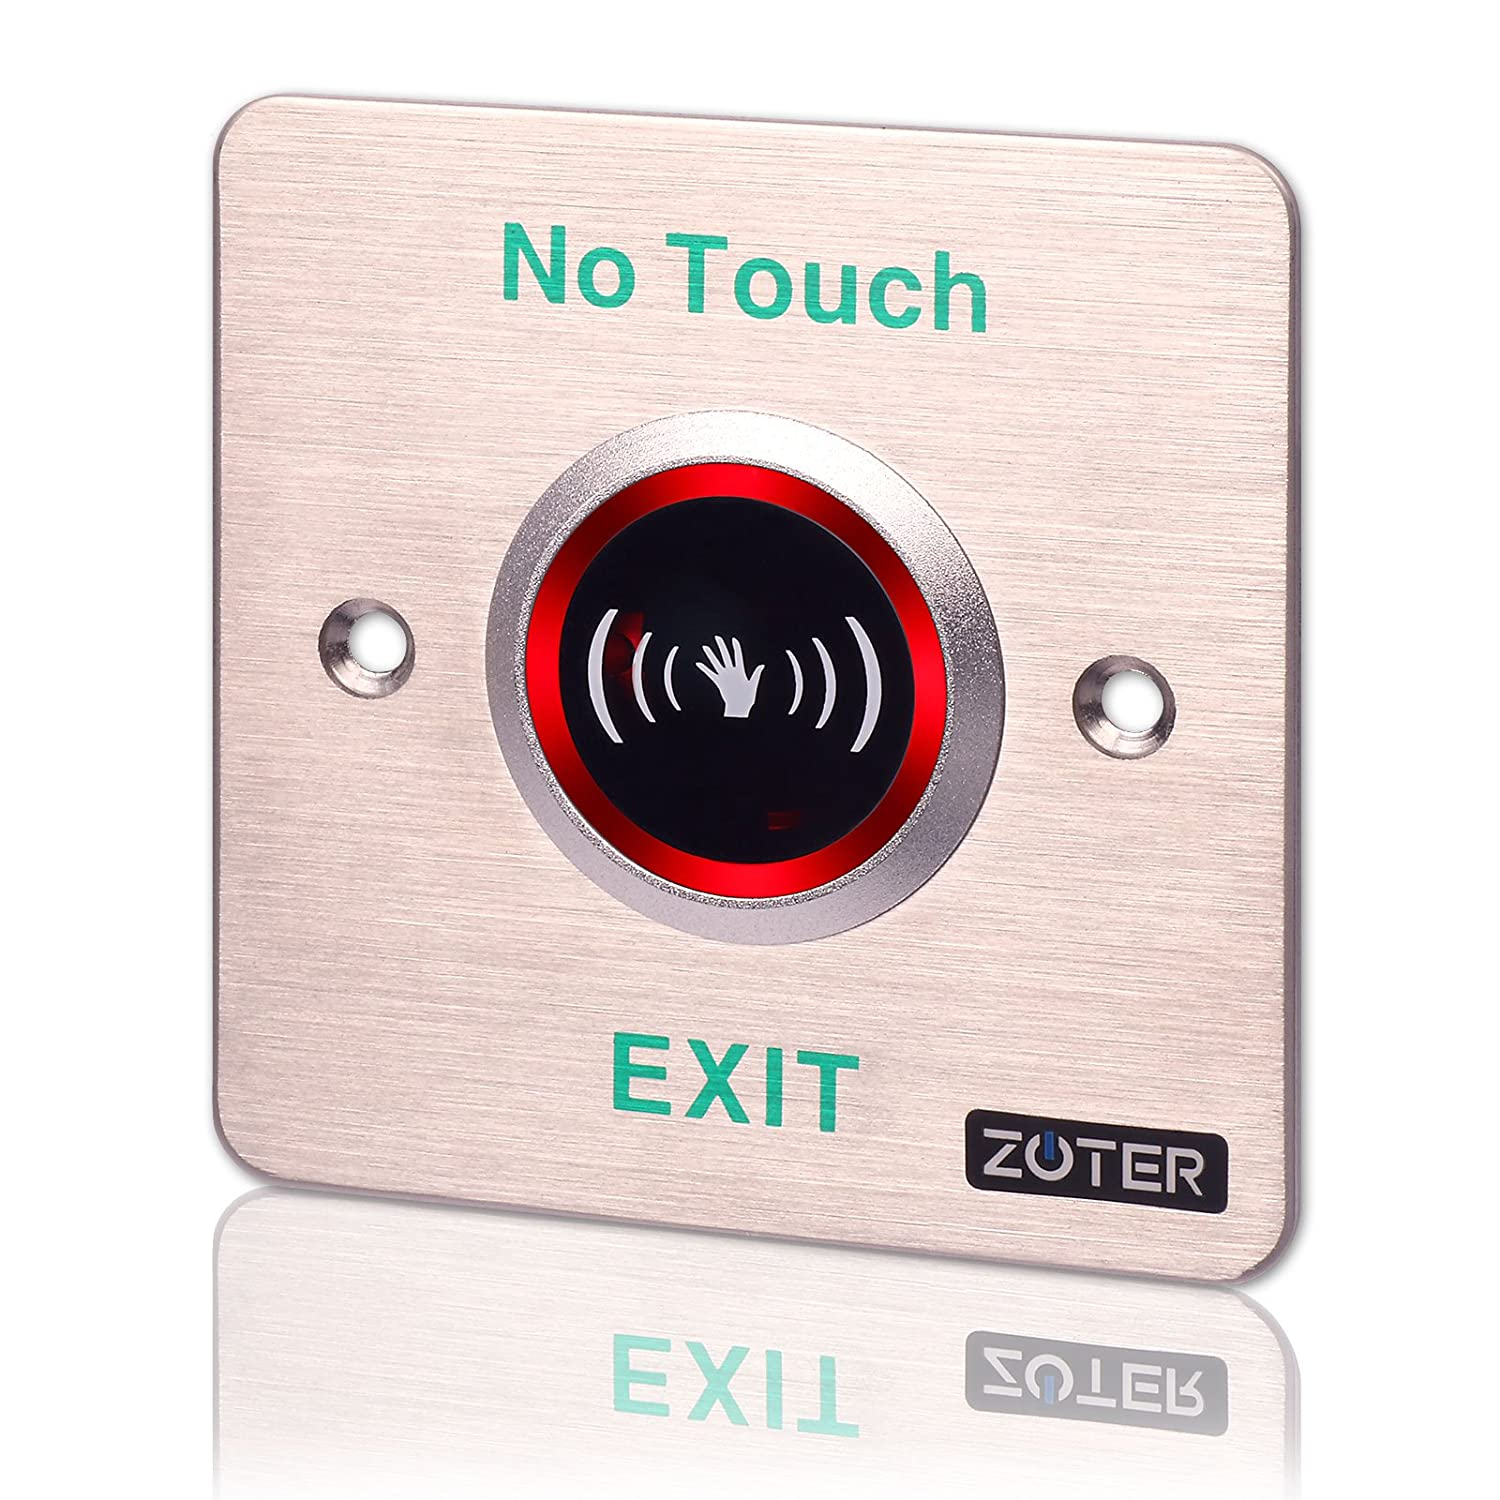 Exit Switch, ZOTER Touchless Release Button No Touch Infrared Sensor Time Delay Hygiene DC 12V Stainless Steel: Amazon.com: Industrial & Scientific